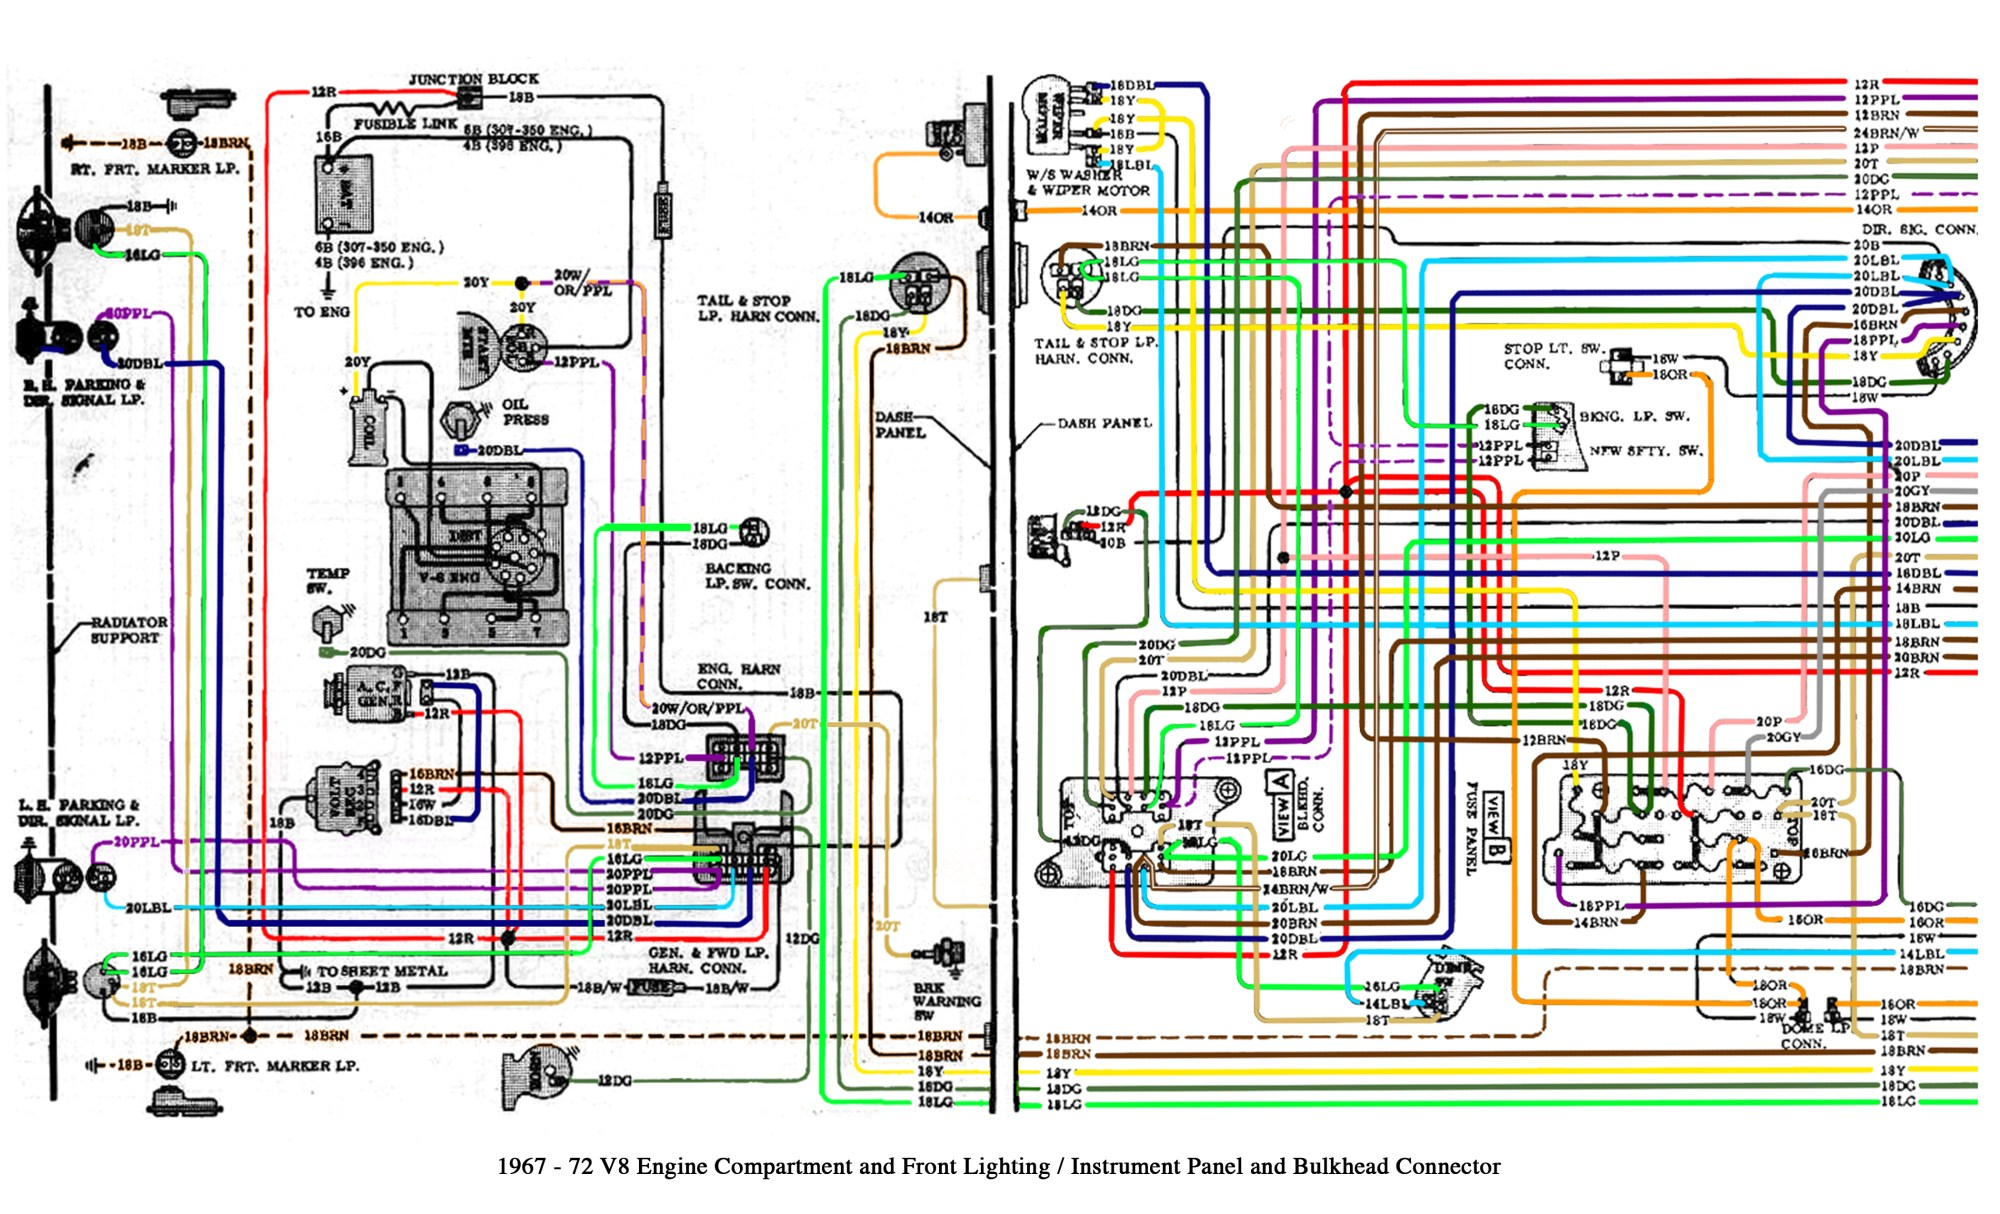 hight resolution of 1970 chevy wiring diagram wiring diagram img 1970 chevy c10 wiring diagram wiring diagram for you